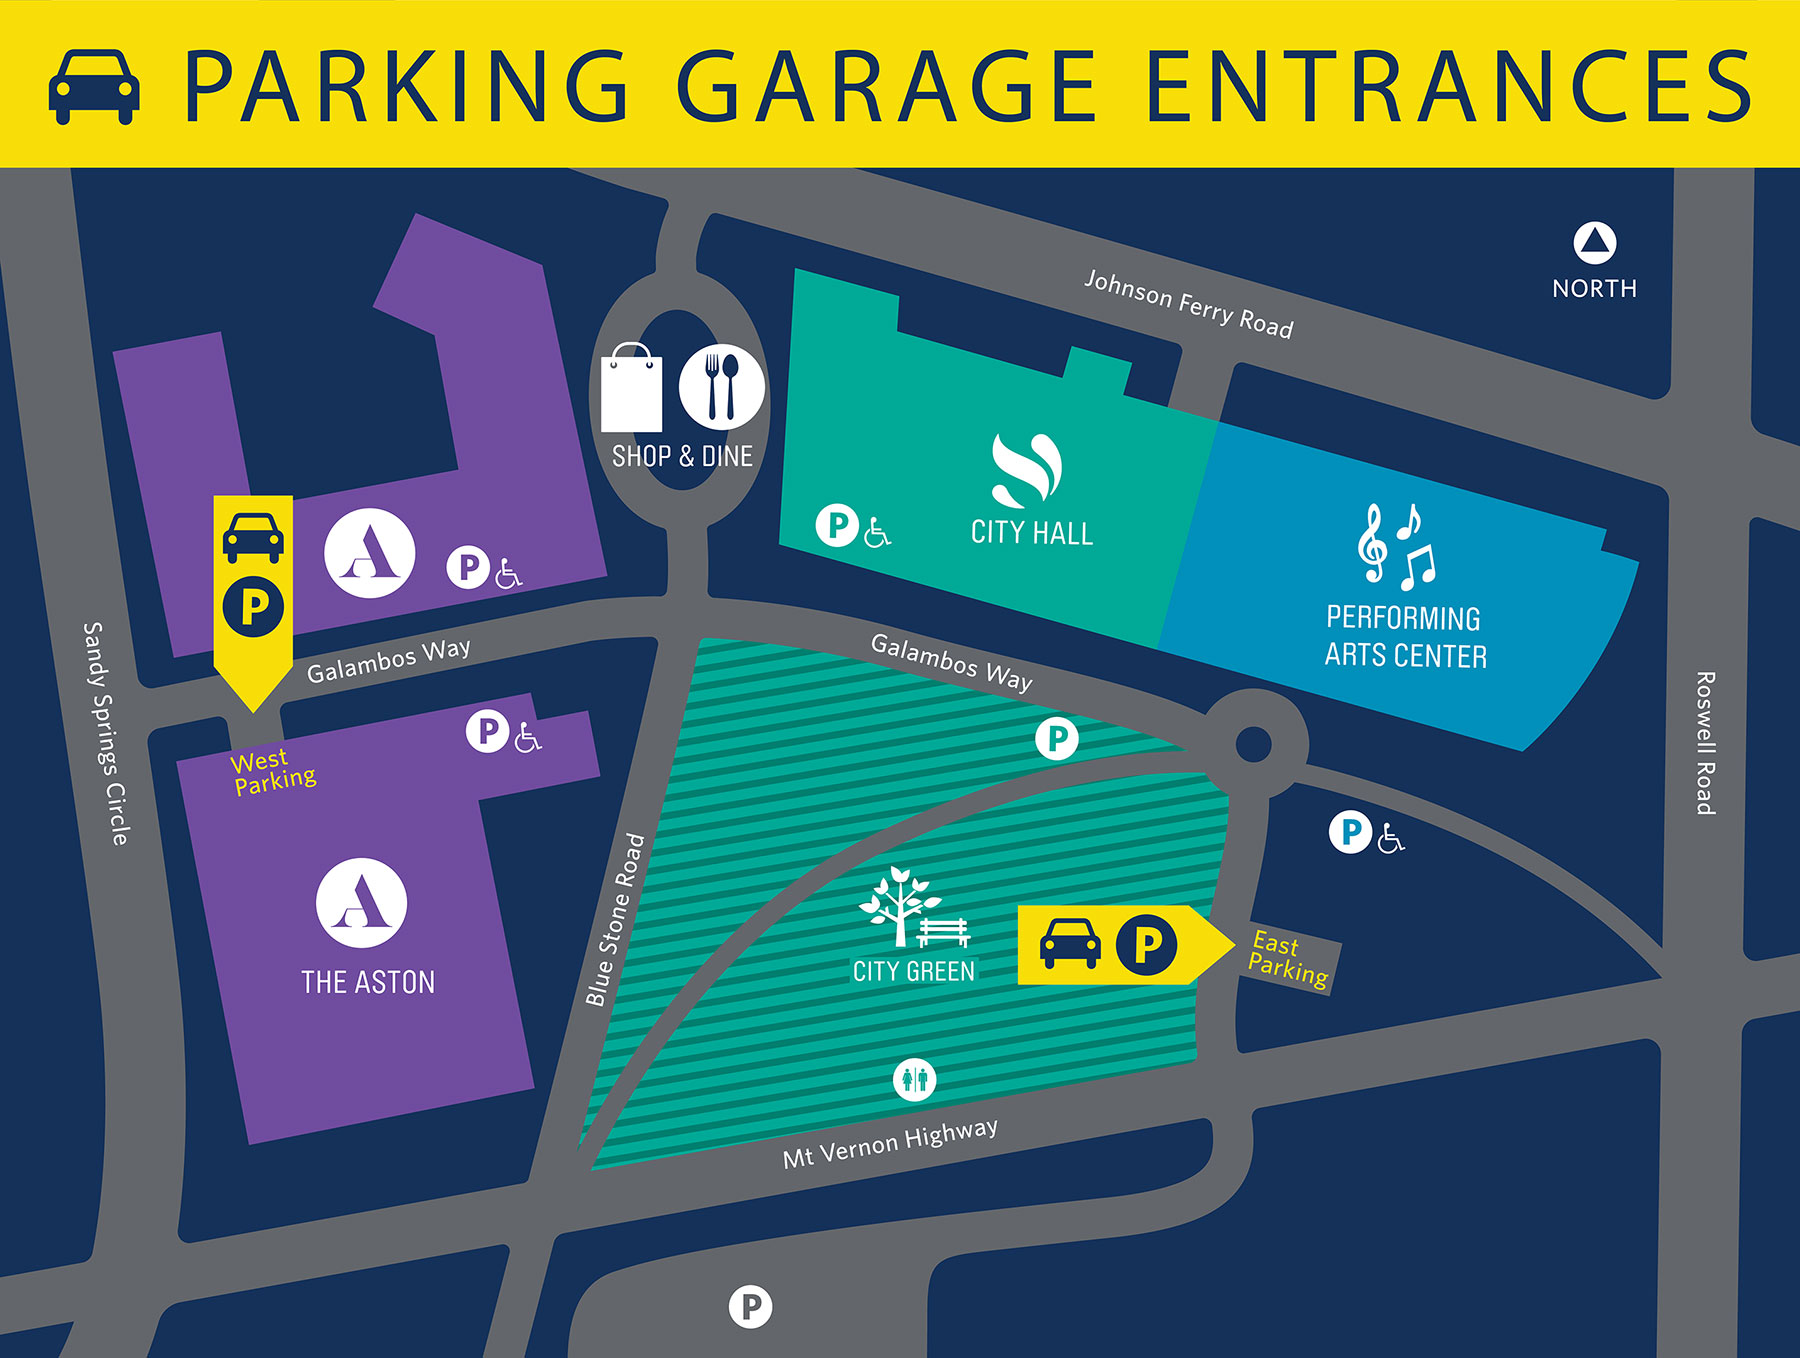 Map Indicating Parking Garage Entrances